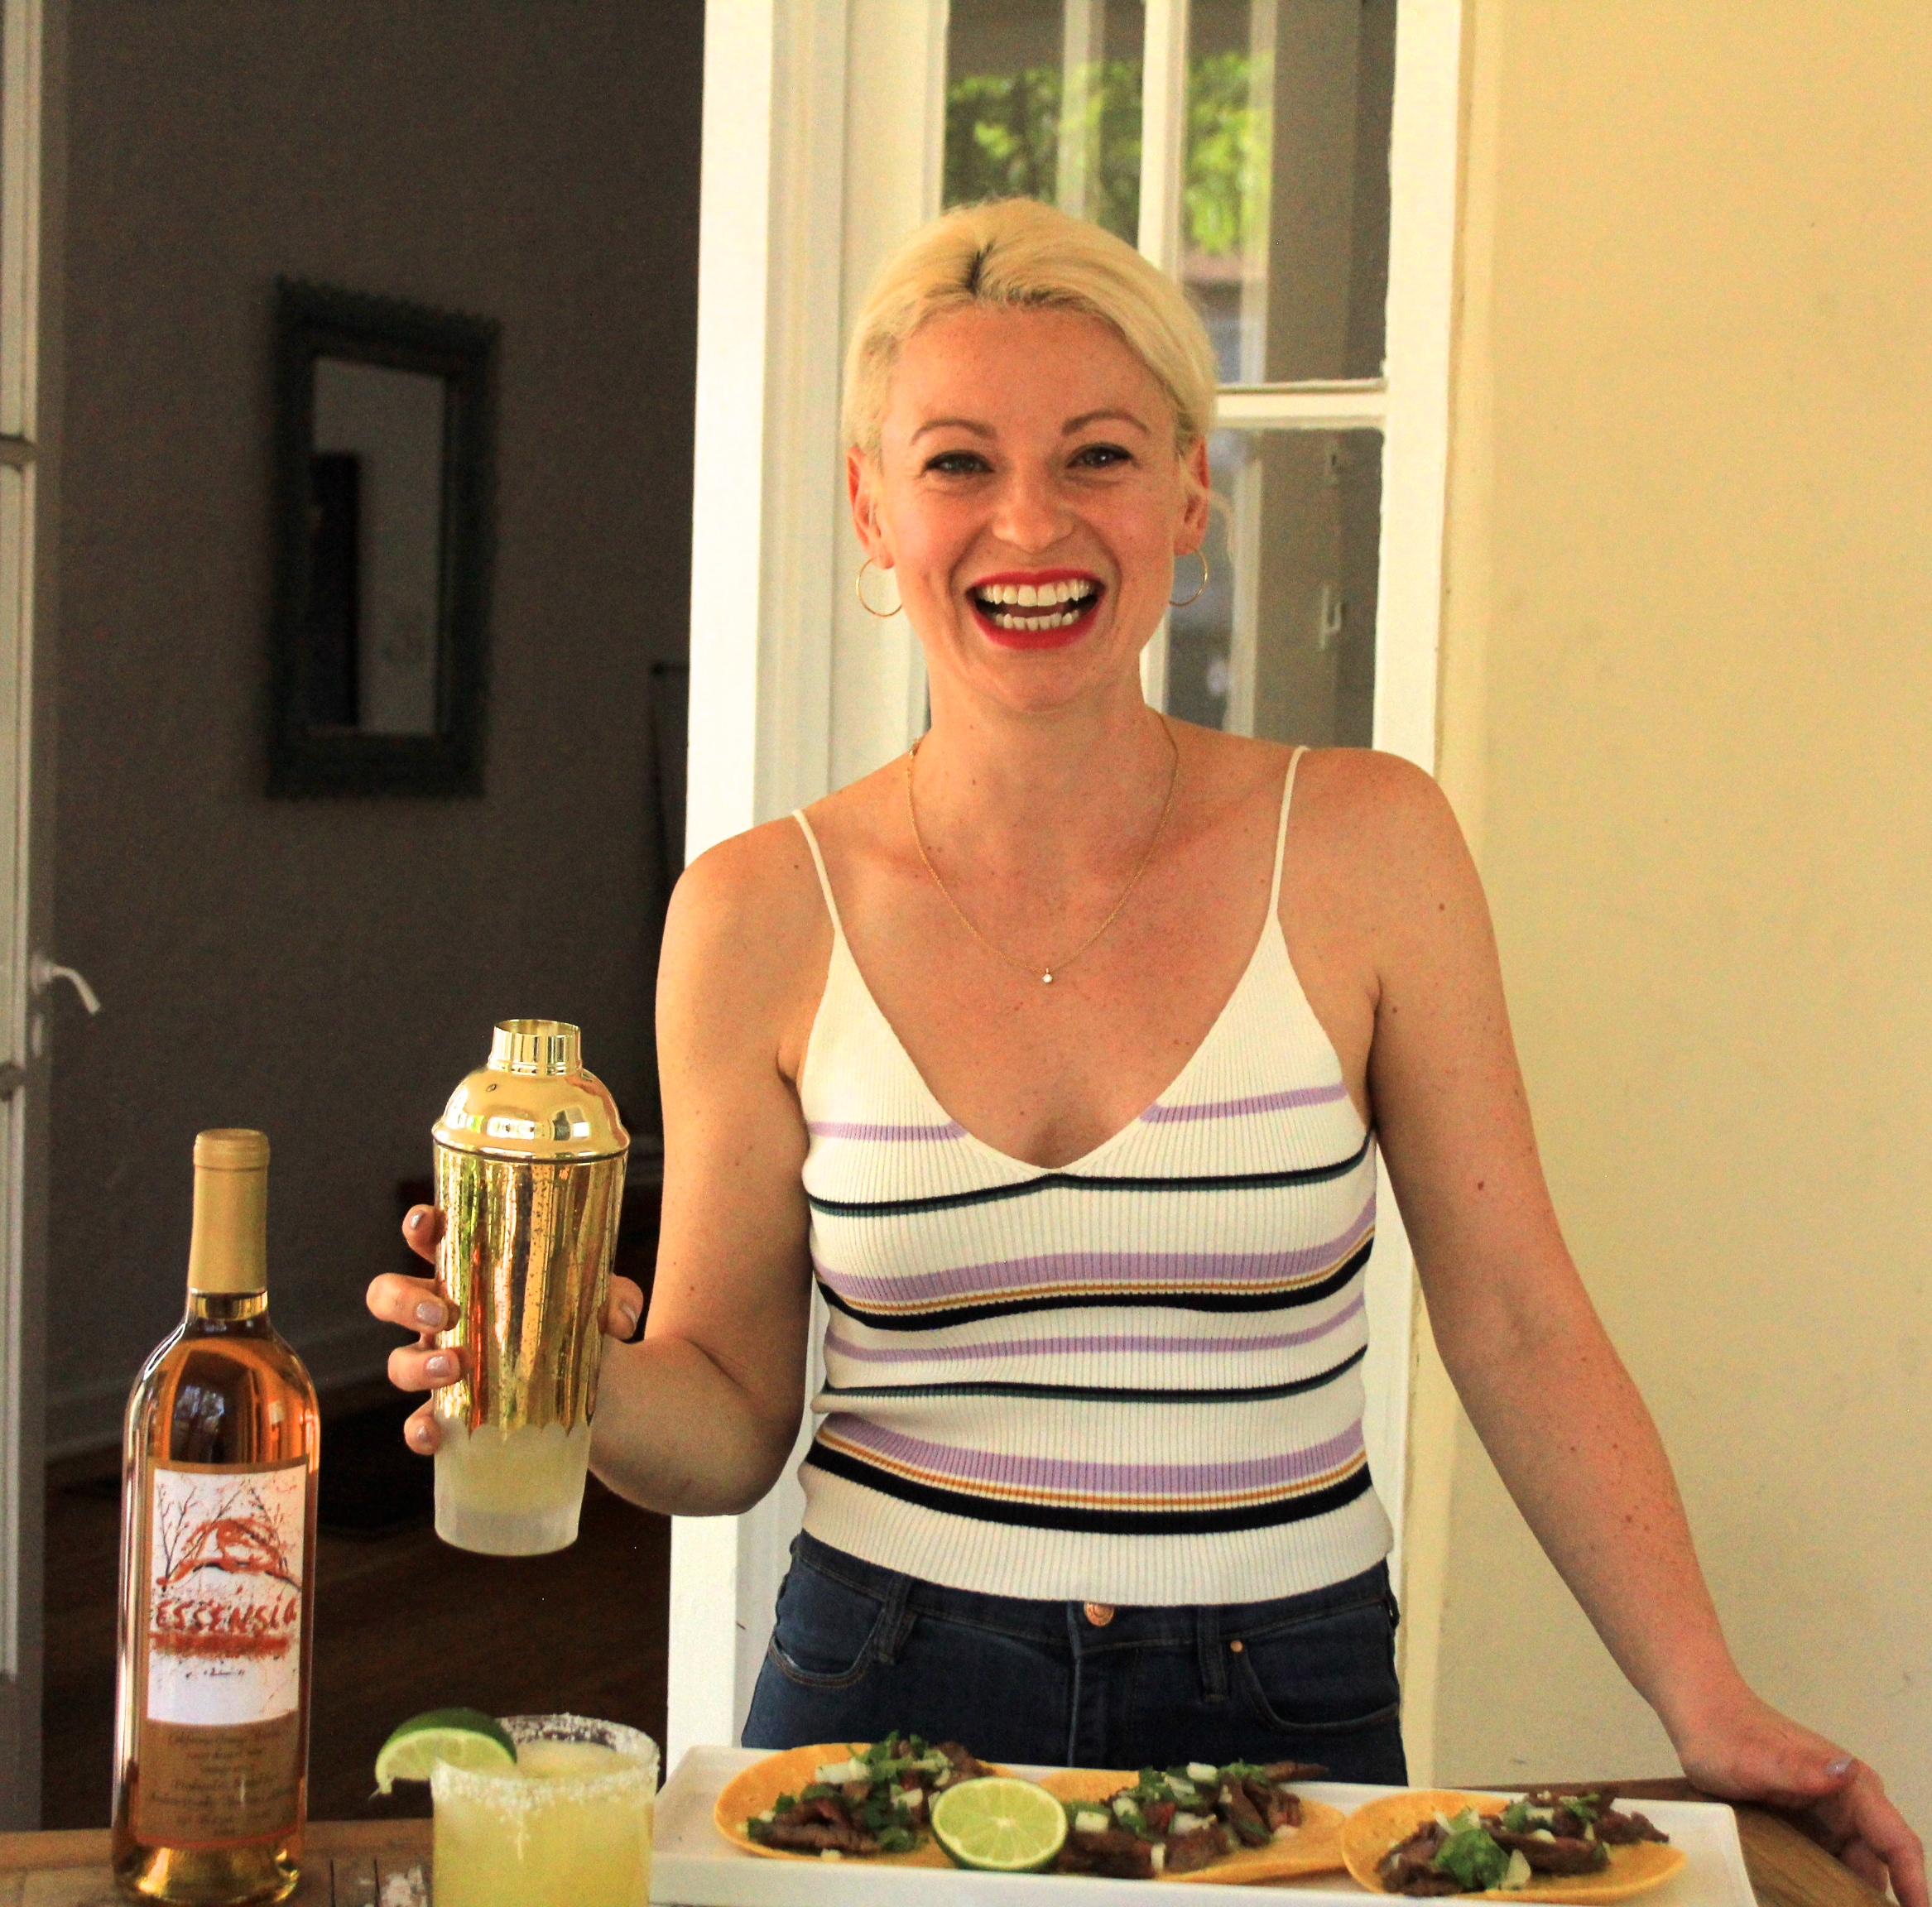 sommelier rebecca rose phillis taco and margarita pairing for cinco de mayo @Letstacoboutwine